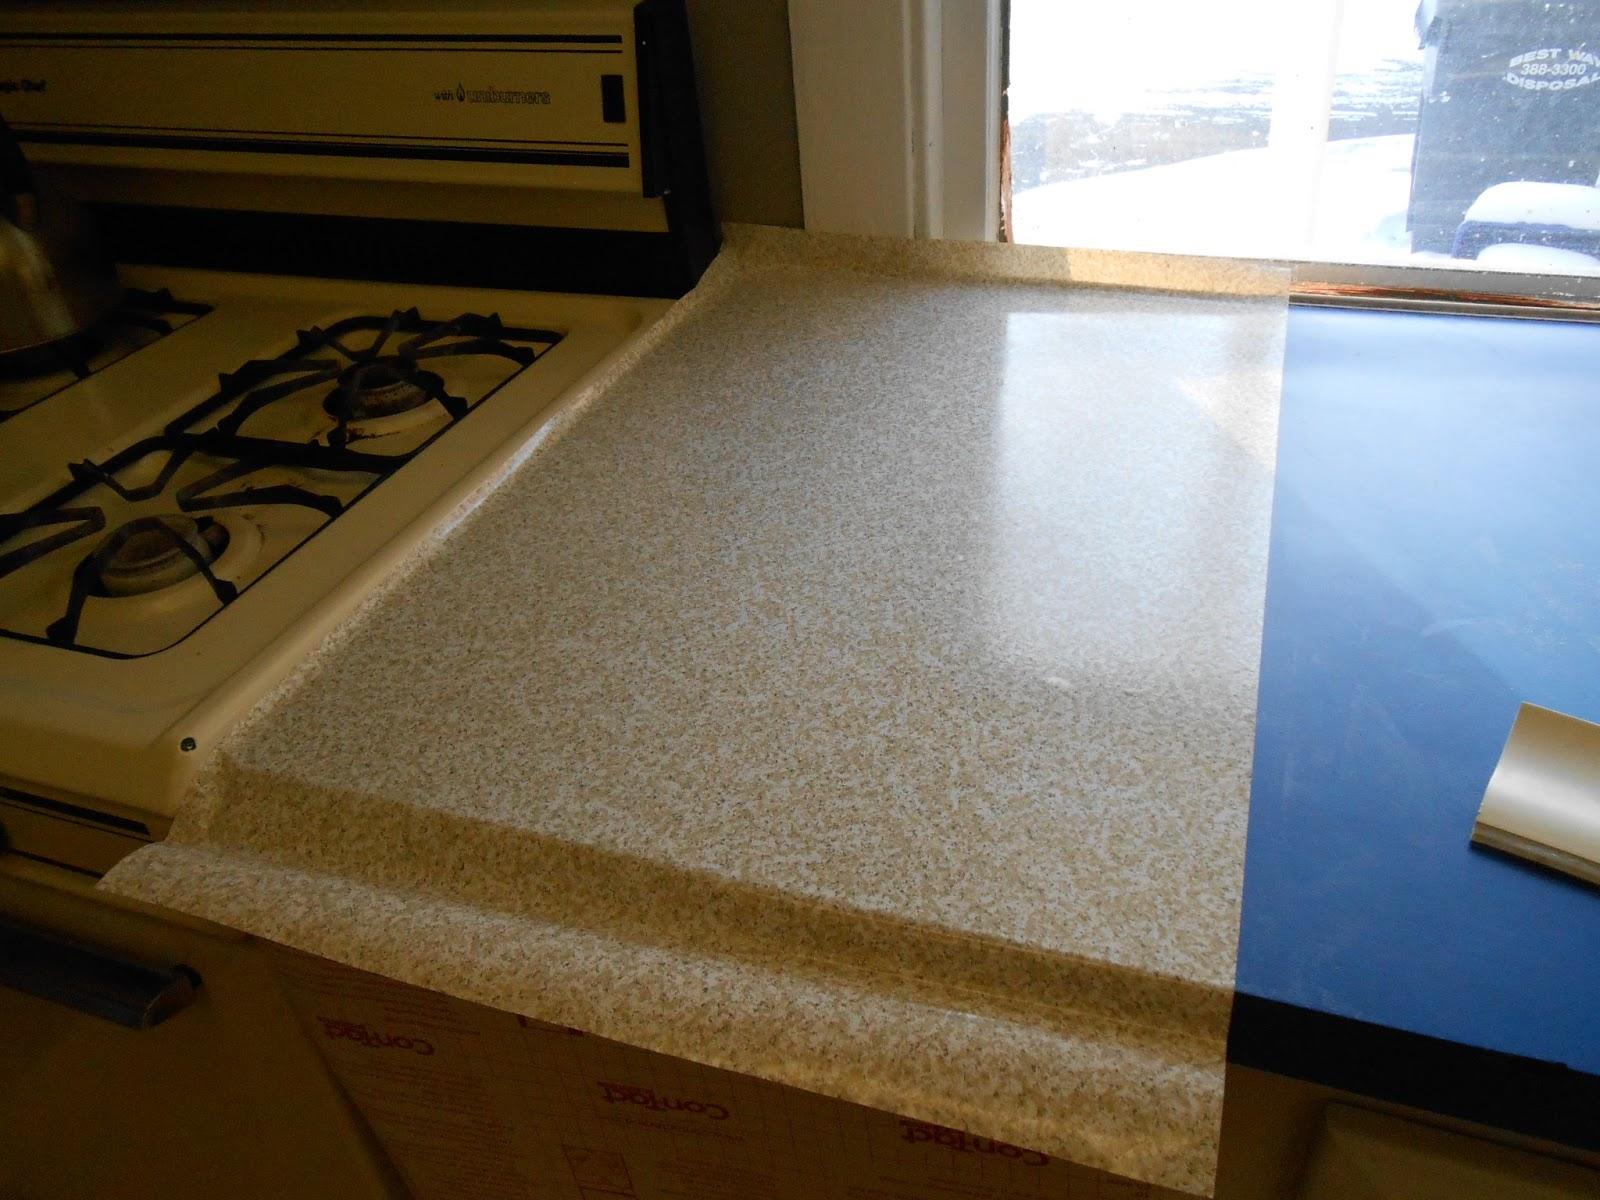 Redecorating 2013 - How to update laminate countertops